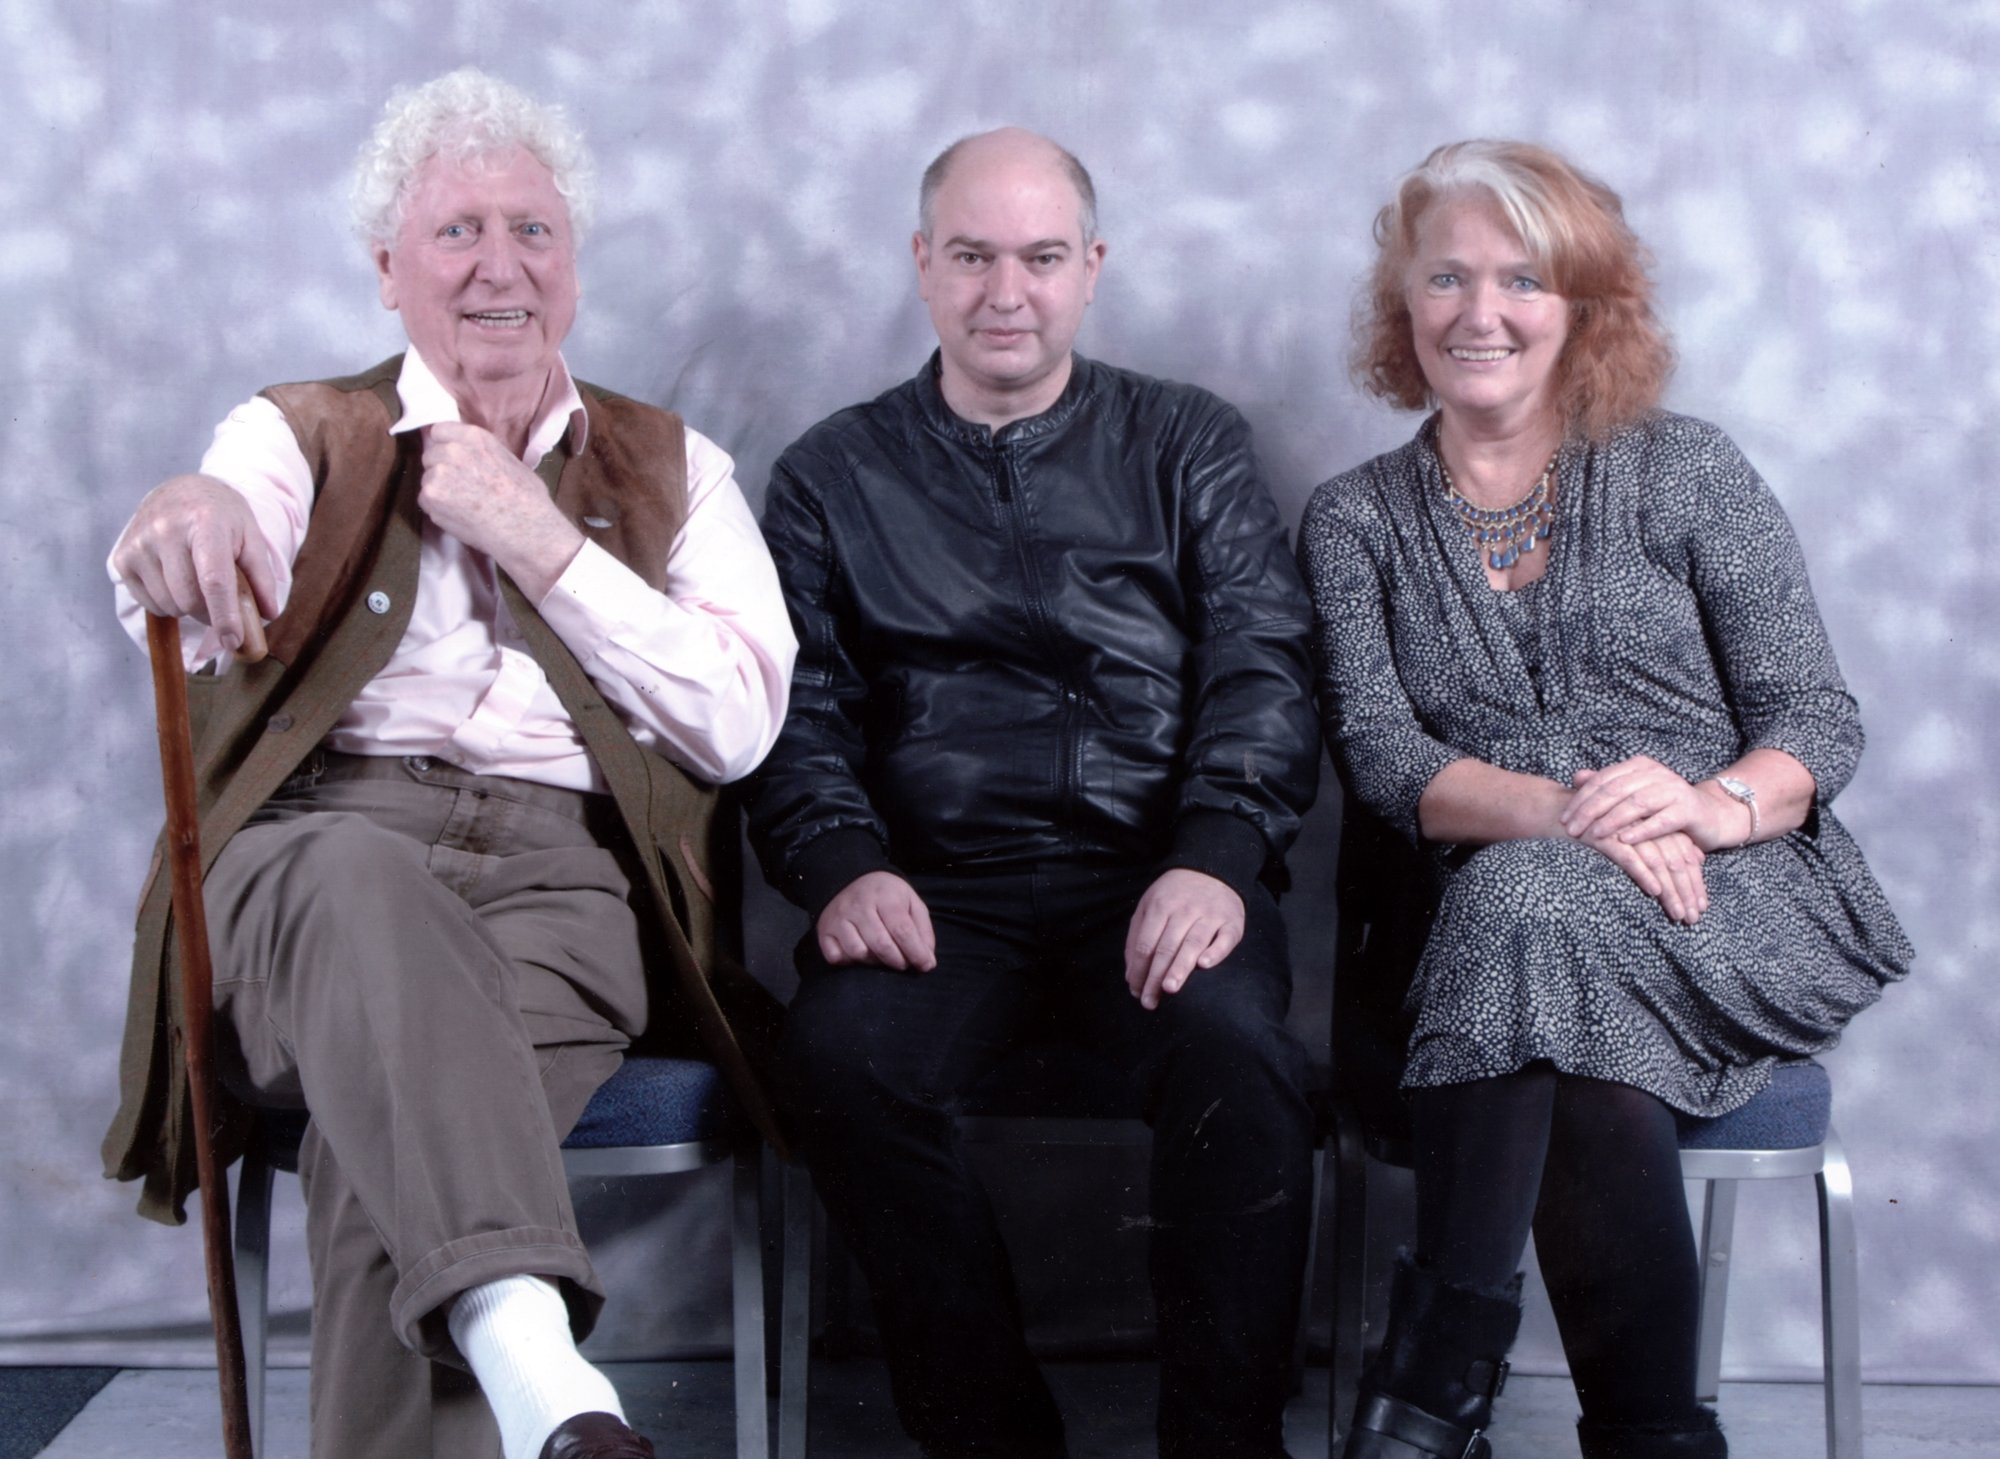 Andrew O'Day with Tom Baker, Louise Jameson